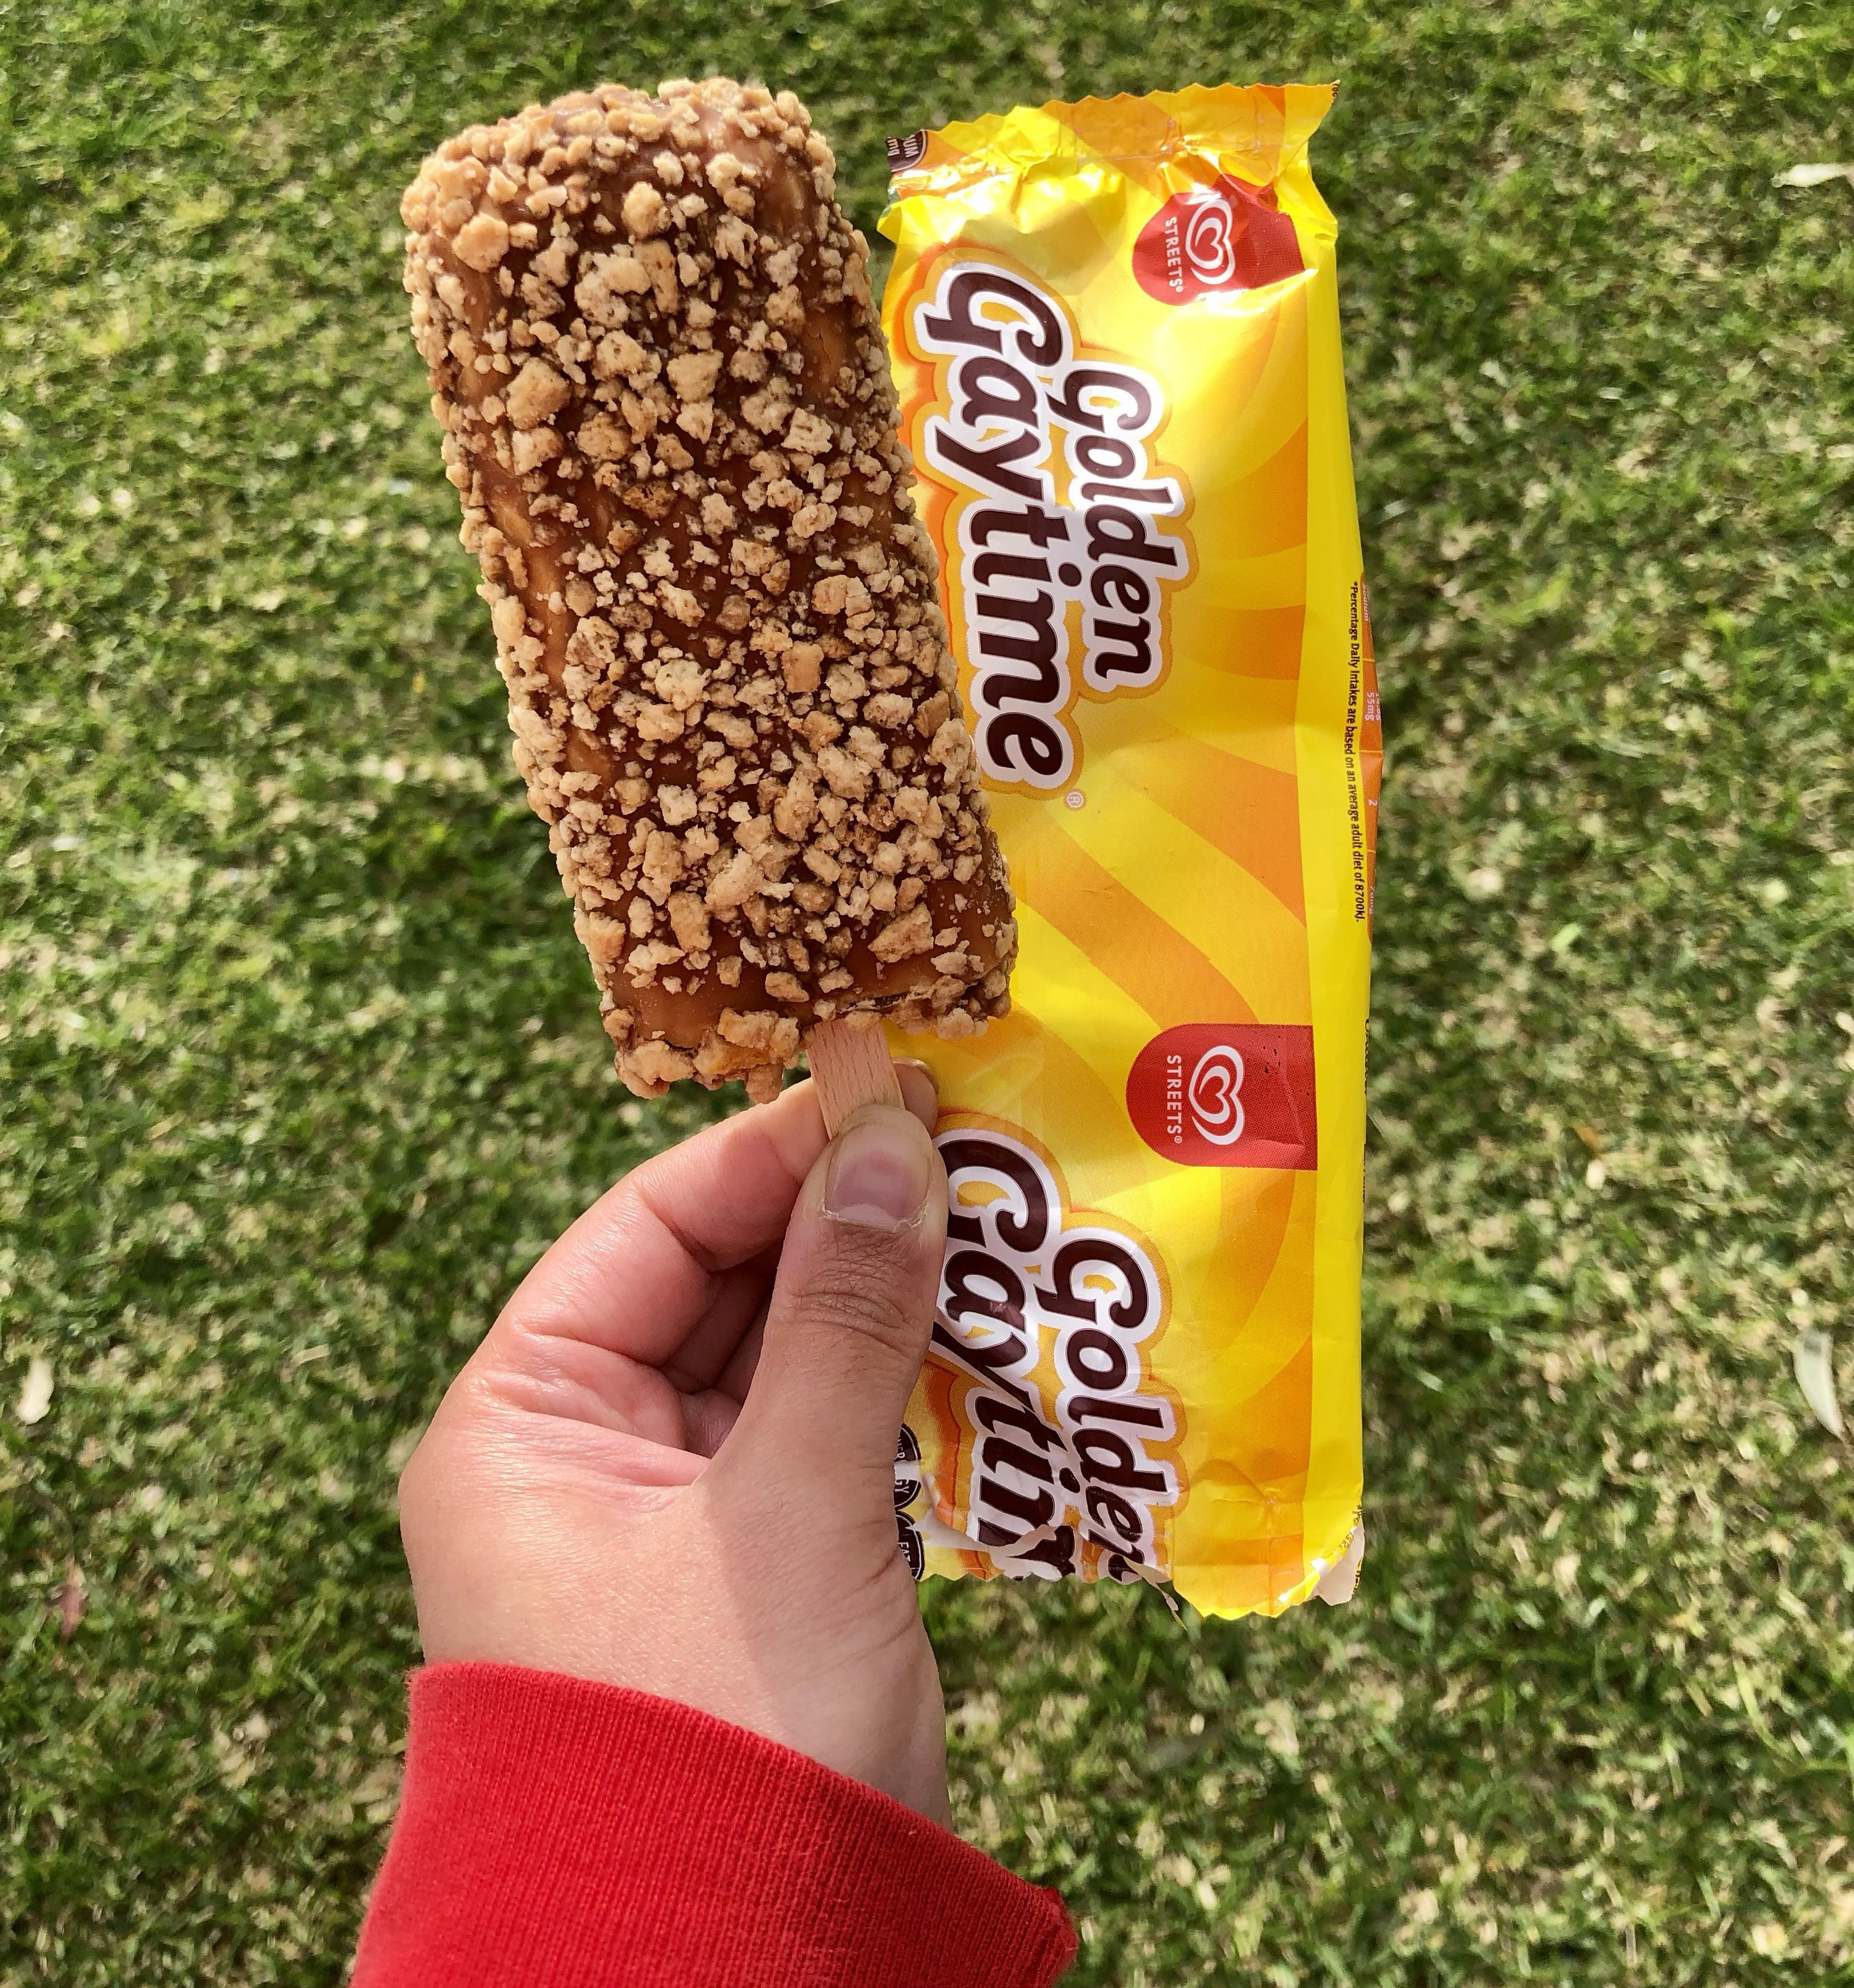 A hand holding a Golden Gaytime ice cream